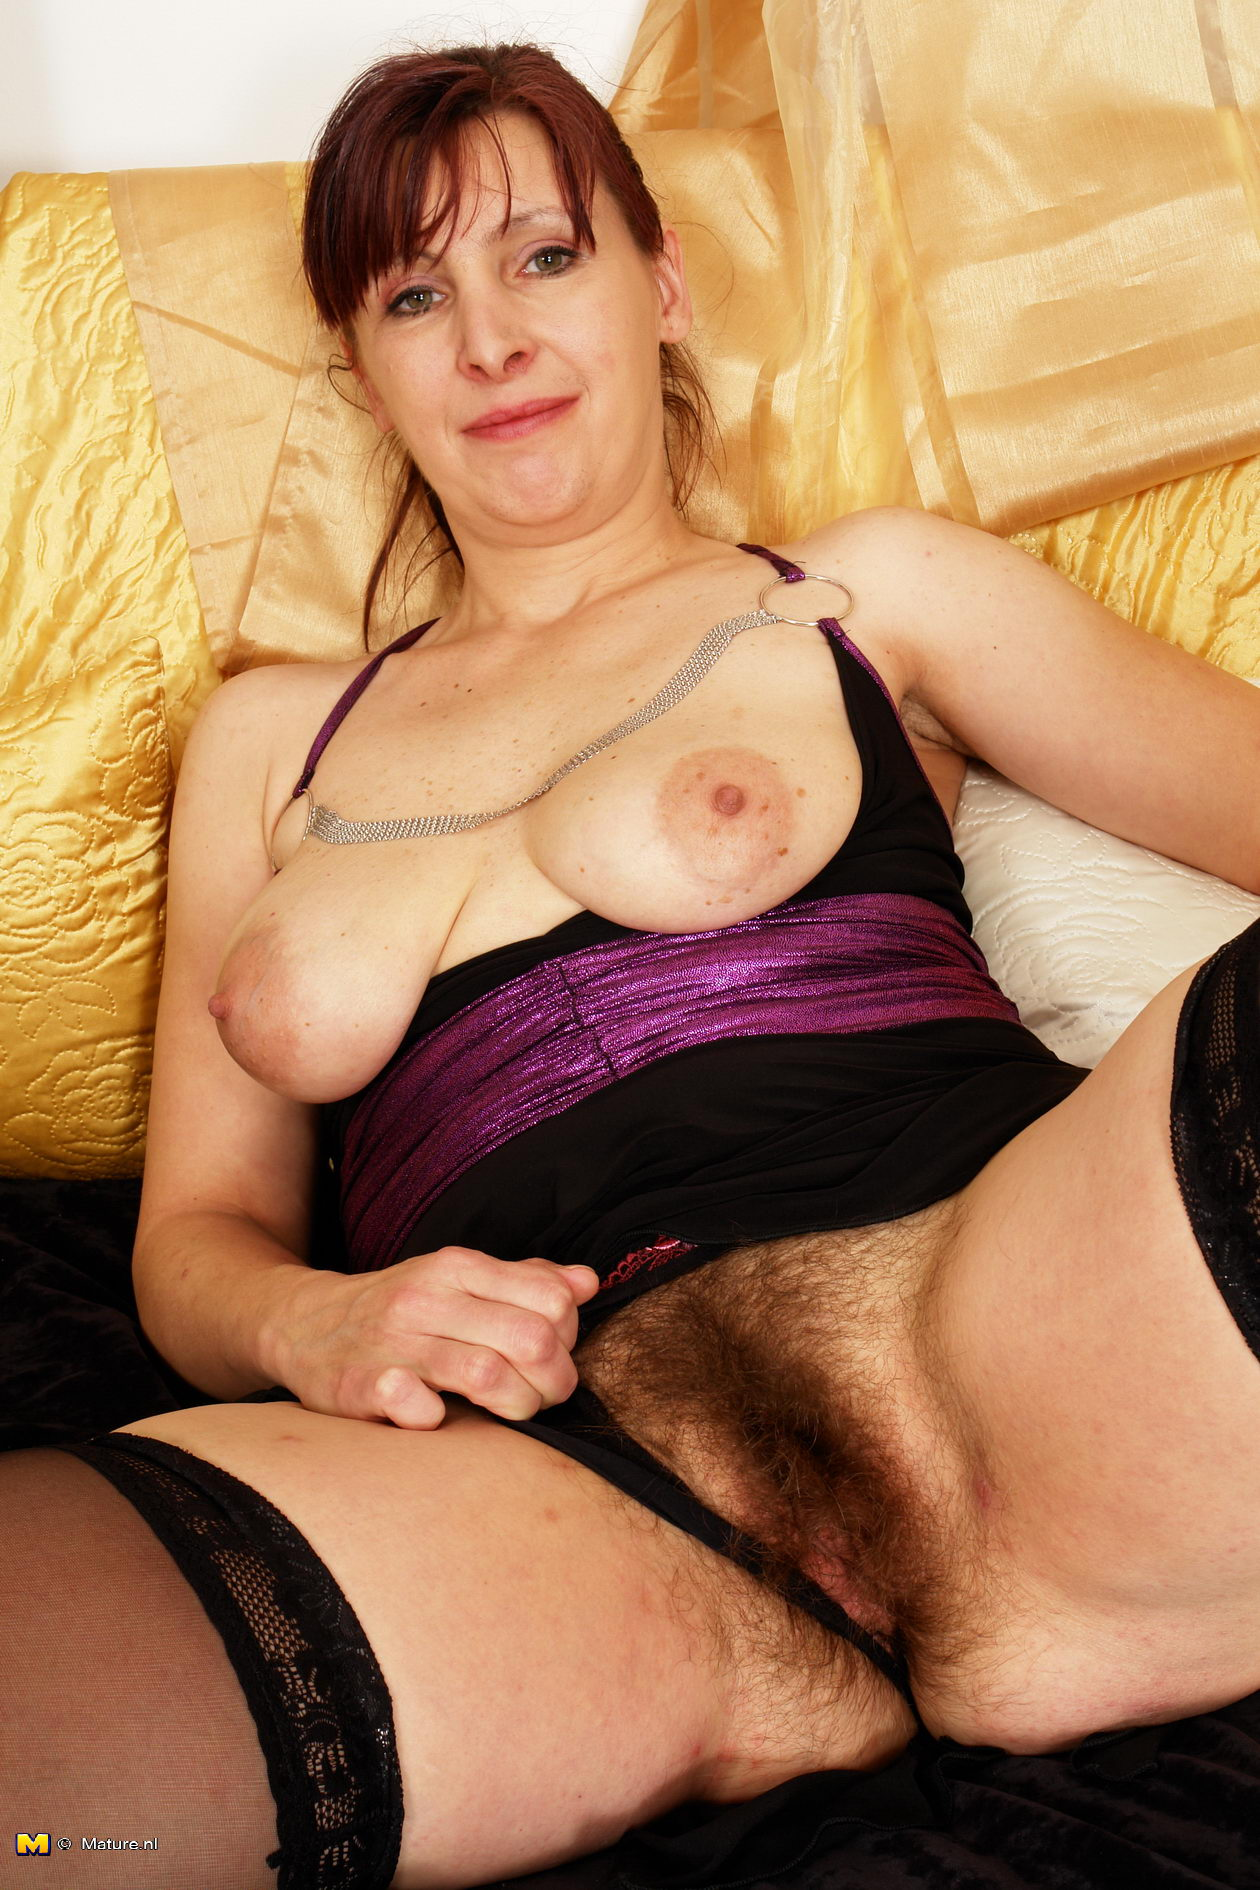 been busy that Free amateur mature pictures love! seeking friendship